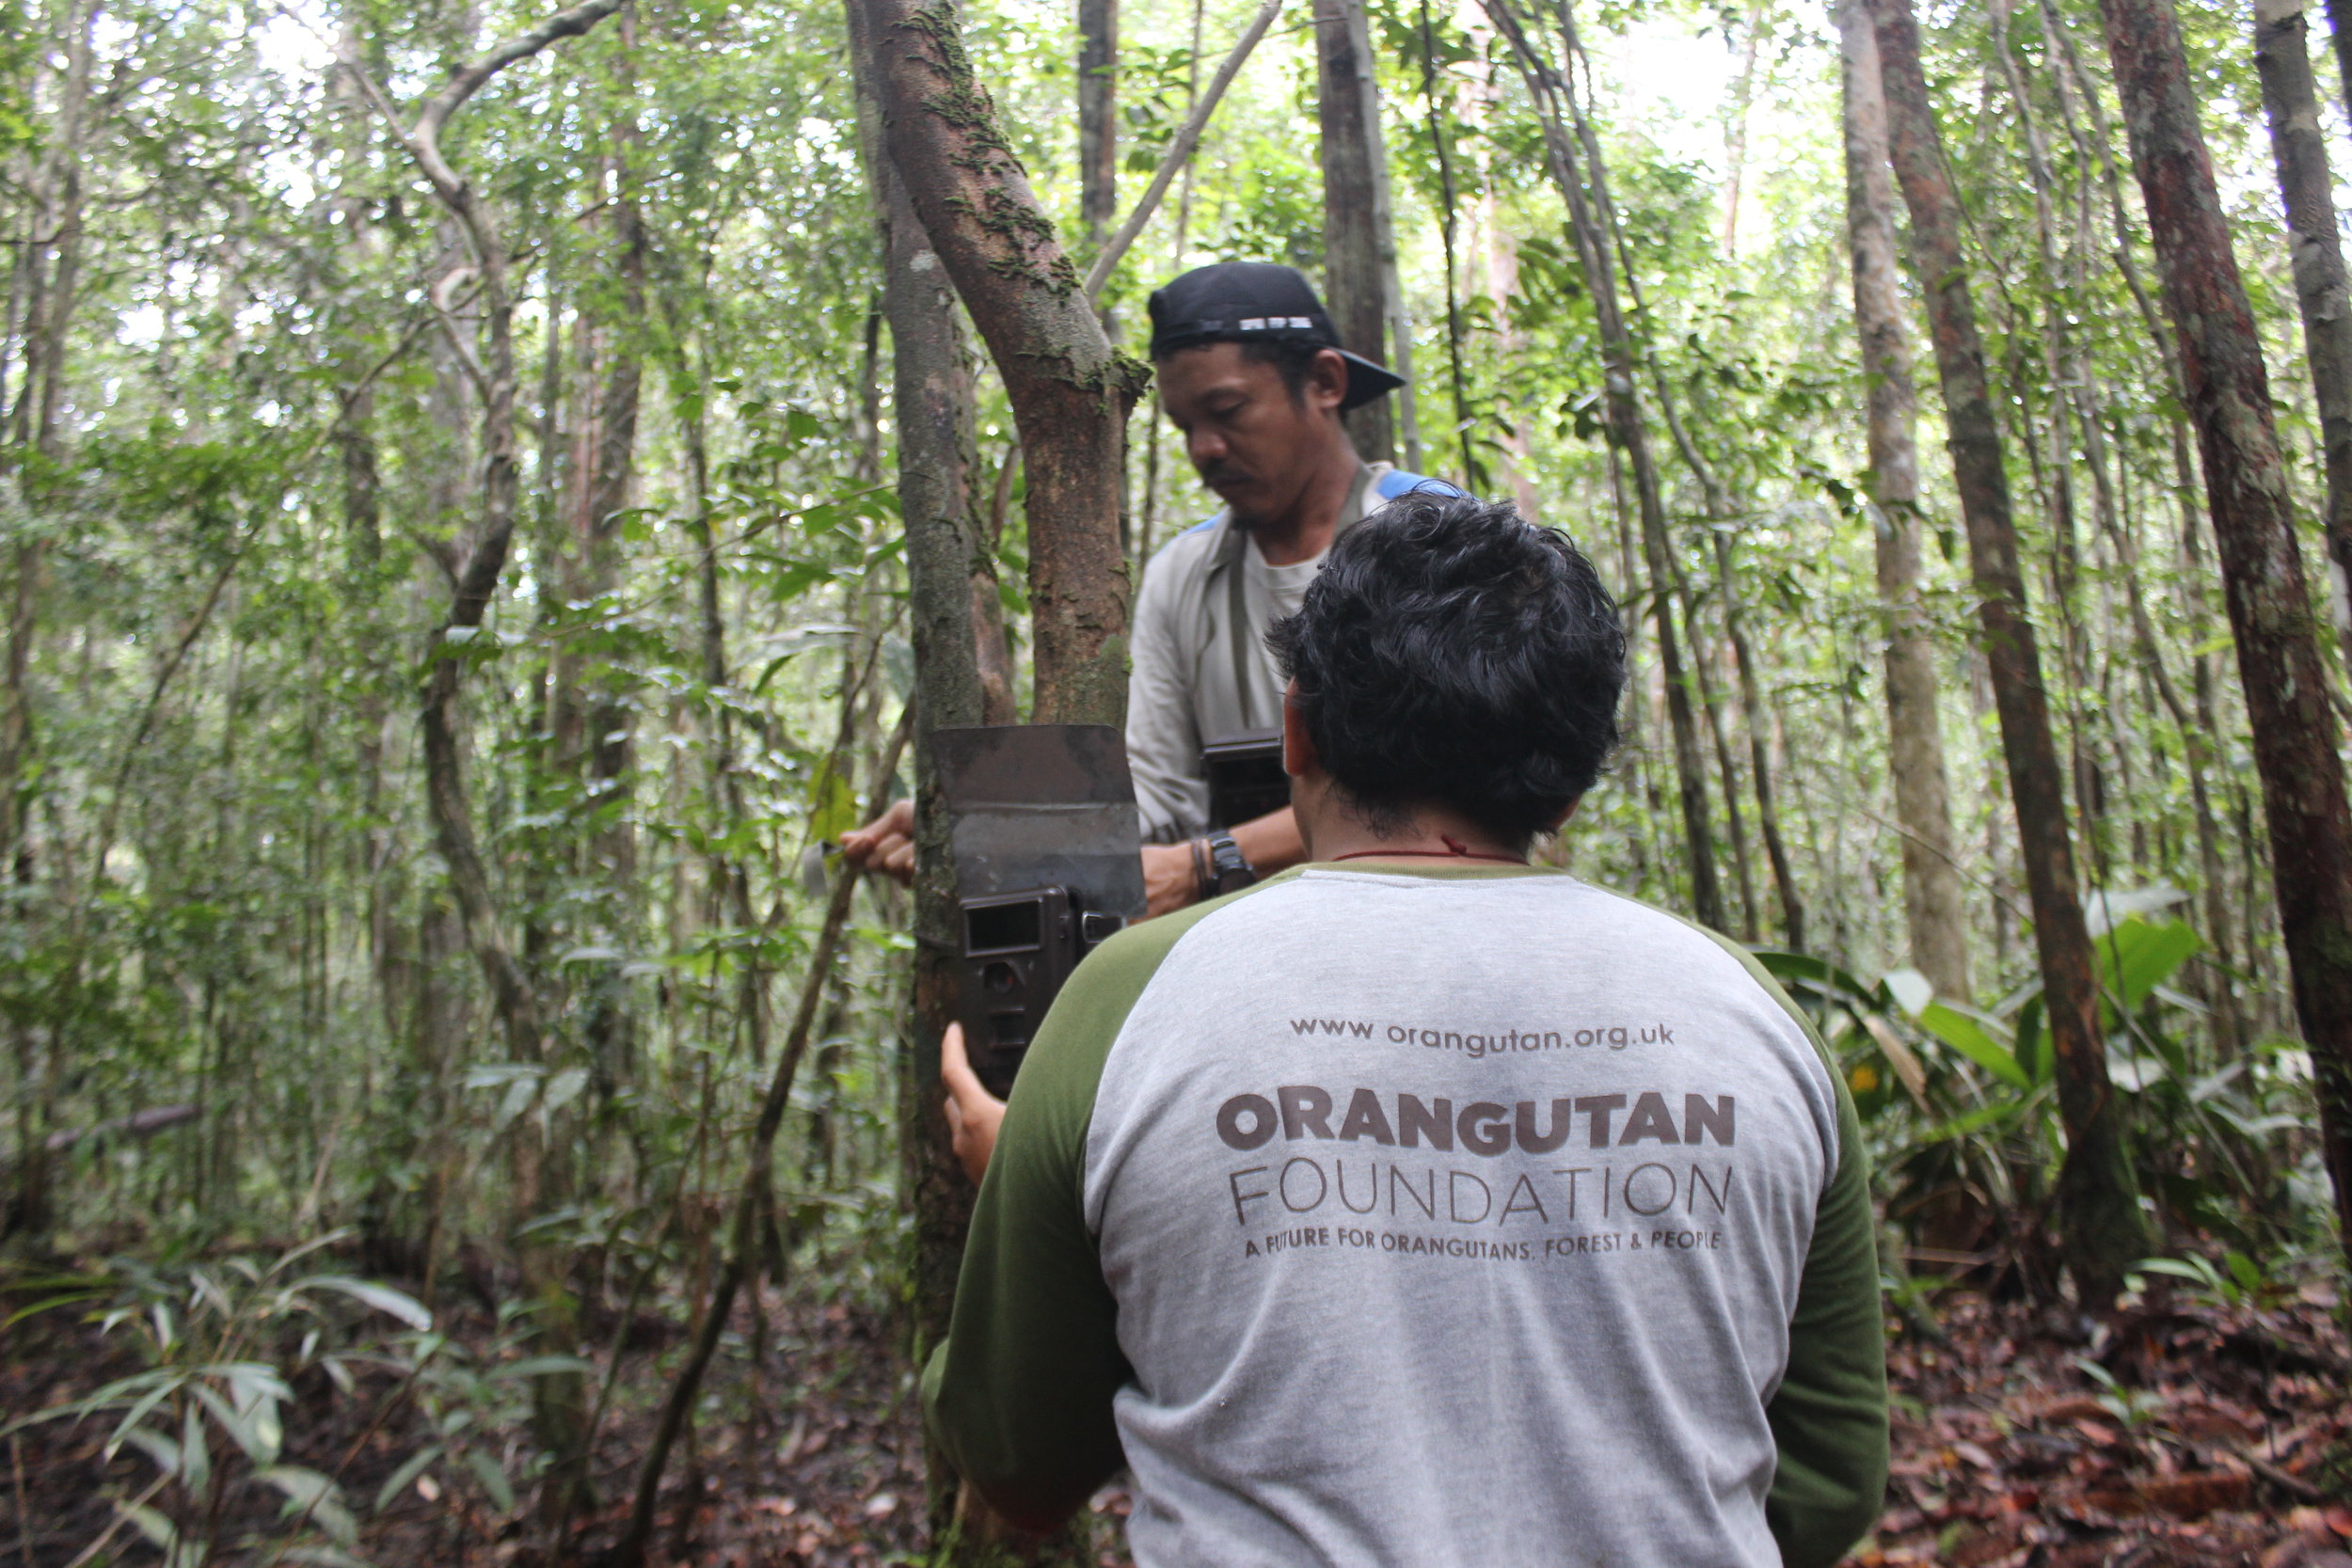 Orangutan Foundation researchers fitting camera traps, which require constant maintenance in the humid conditions and with the odd interference from wildlife too!